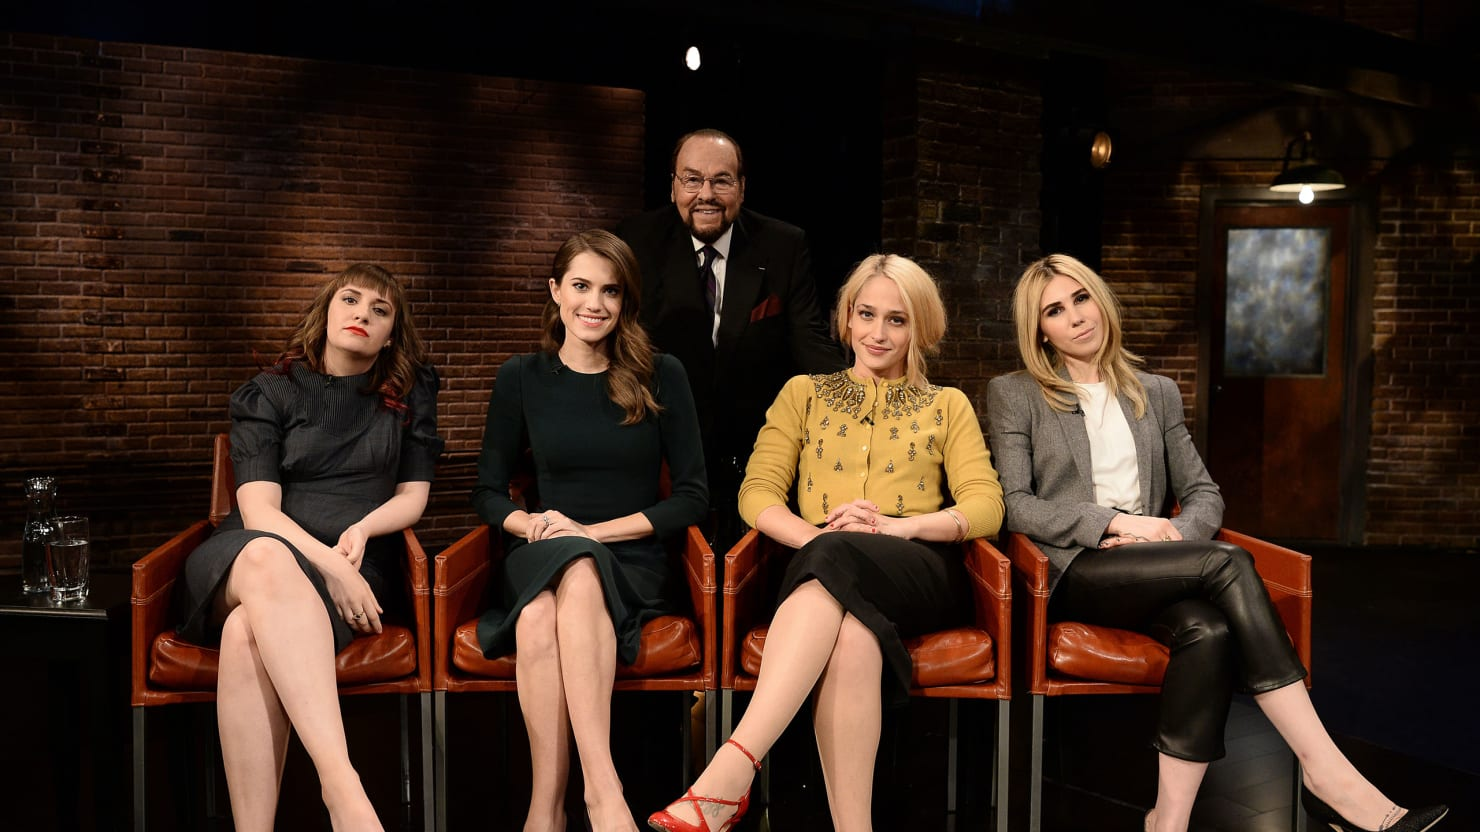 Inside 'Inside the Actors Studio': Backstage With James Lipton and the 'Girls' Cast